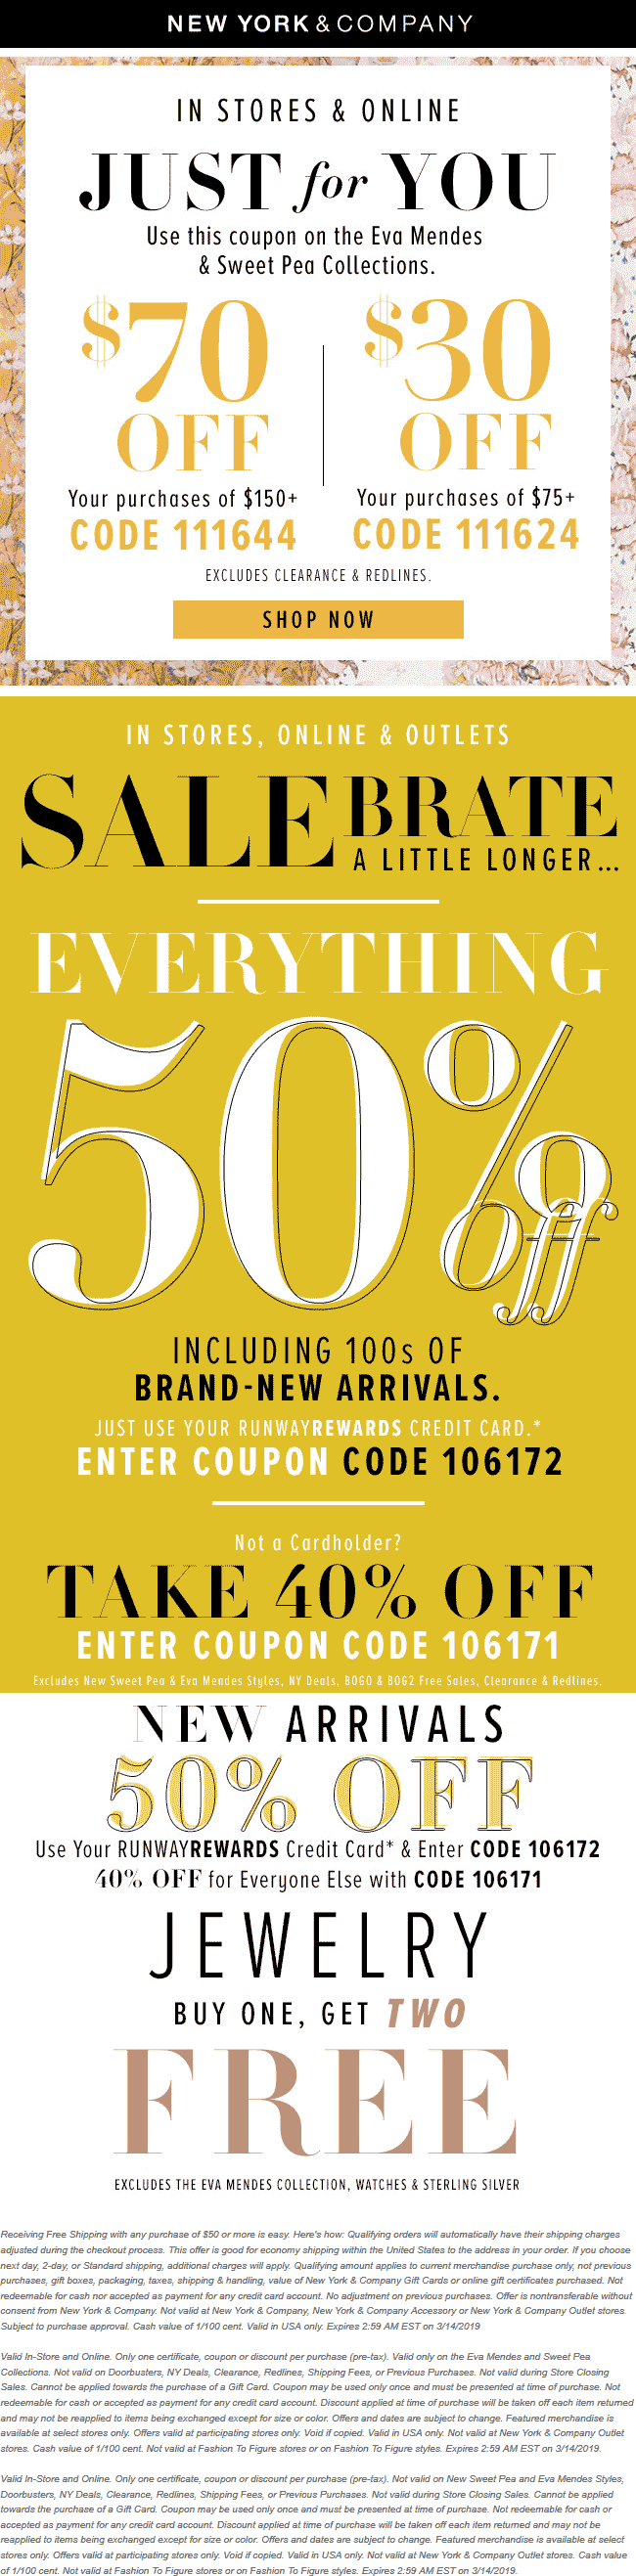 New York & Company coupons & promo code for [August 2020]